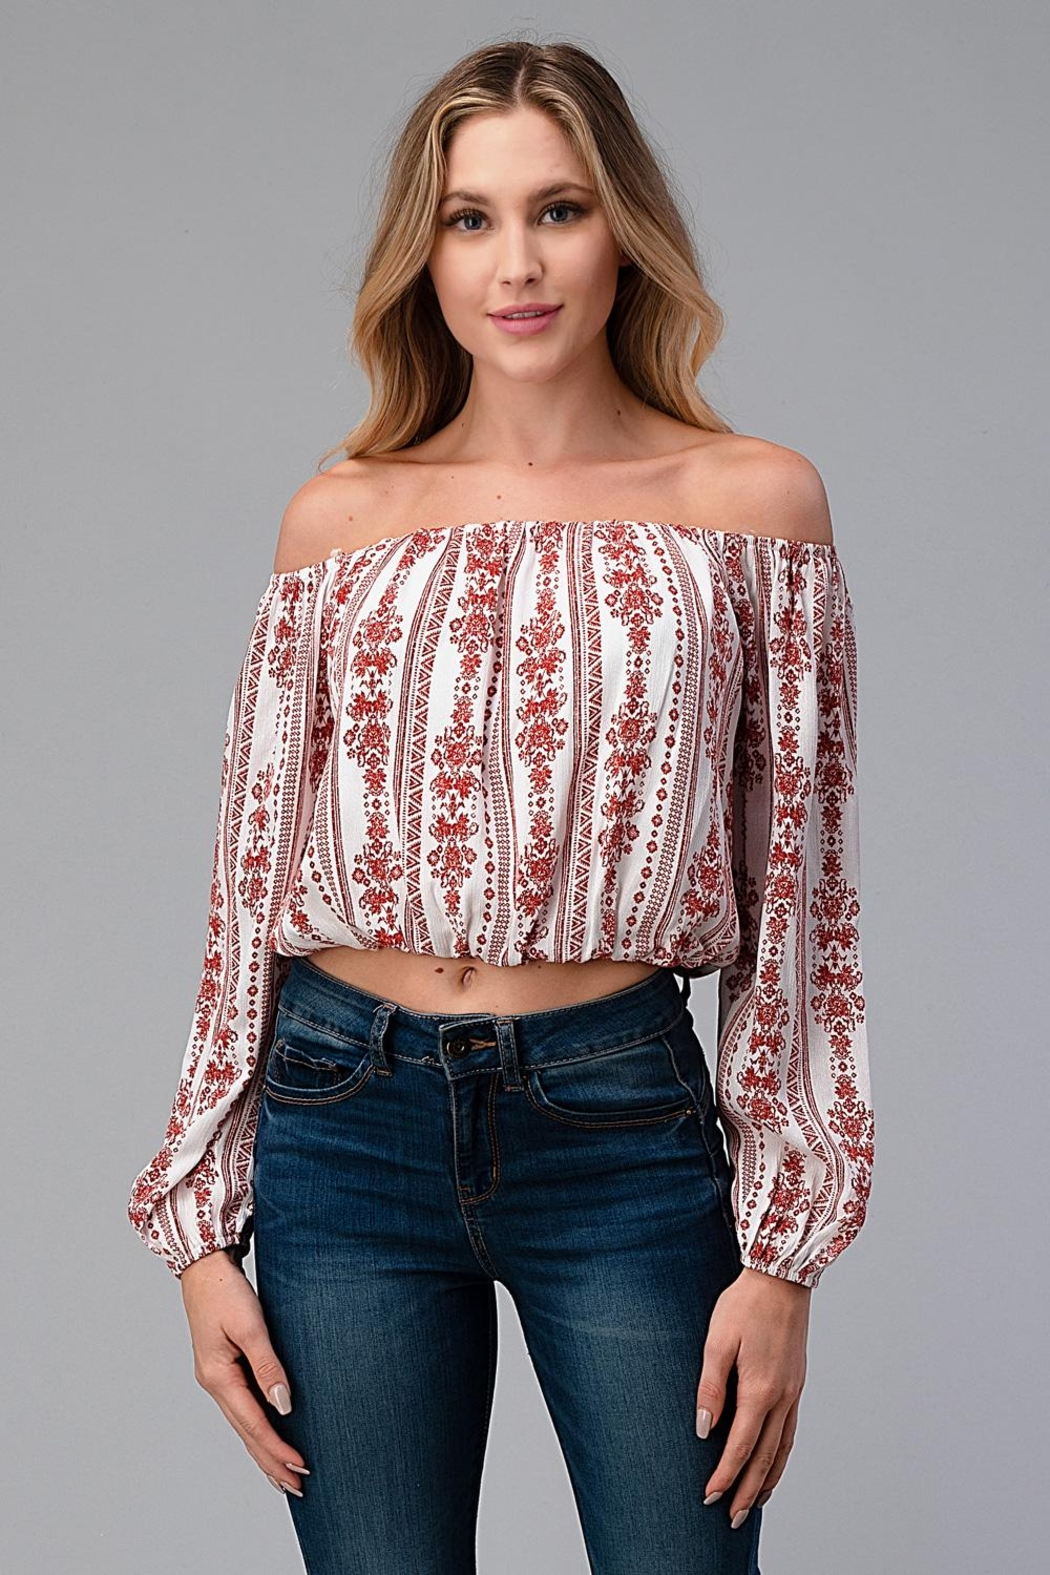 Miley and Molly Off Shoulder Blouse Fashion Top - Front Cropped Image